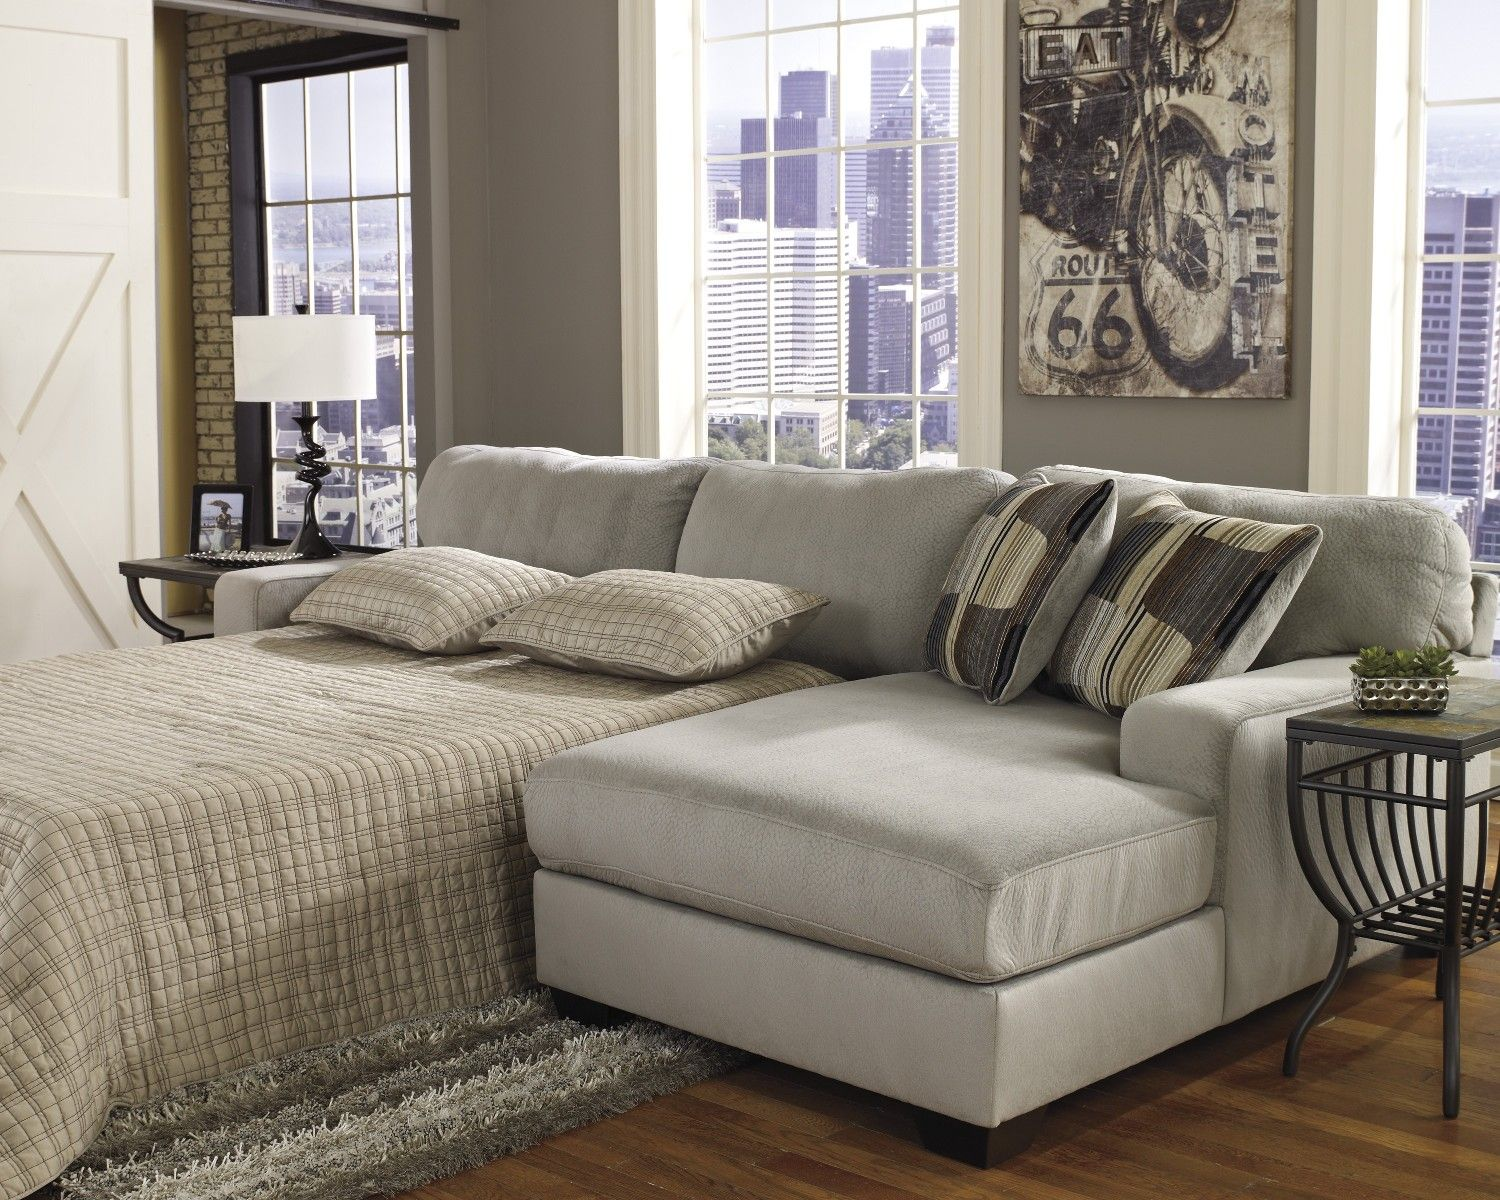 Tips To Consider When Buying A Sleeper Sofa Sectional Sofa With Chaise Best Sleeper Sofa Sleeper Sofa Comfortable